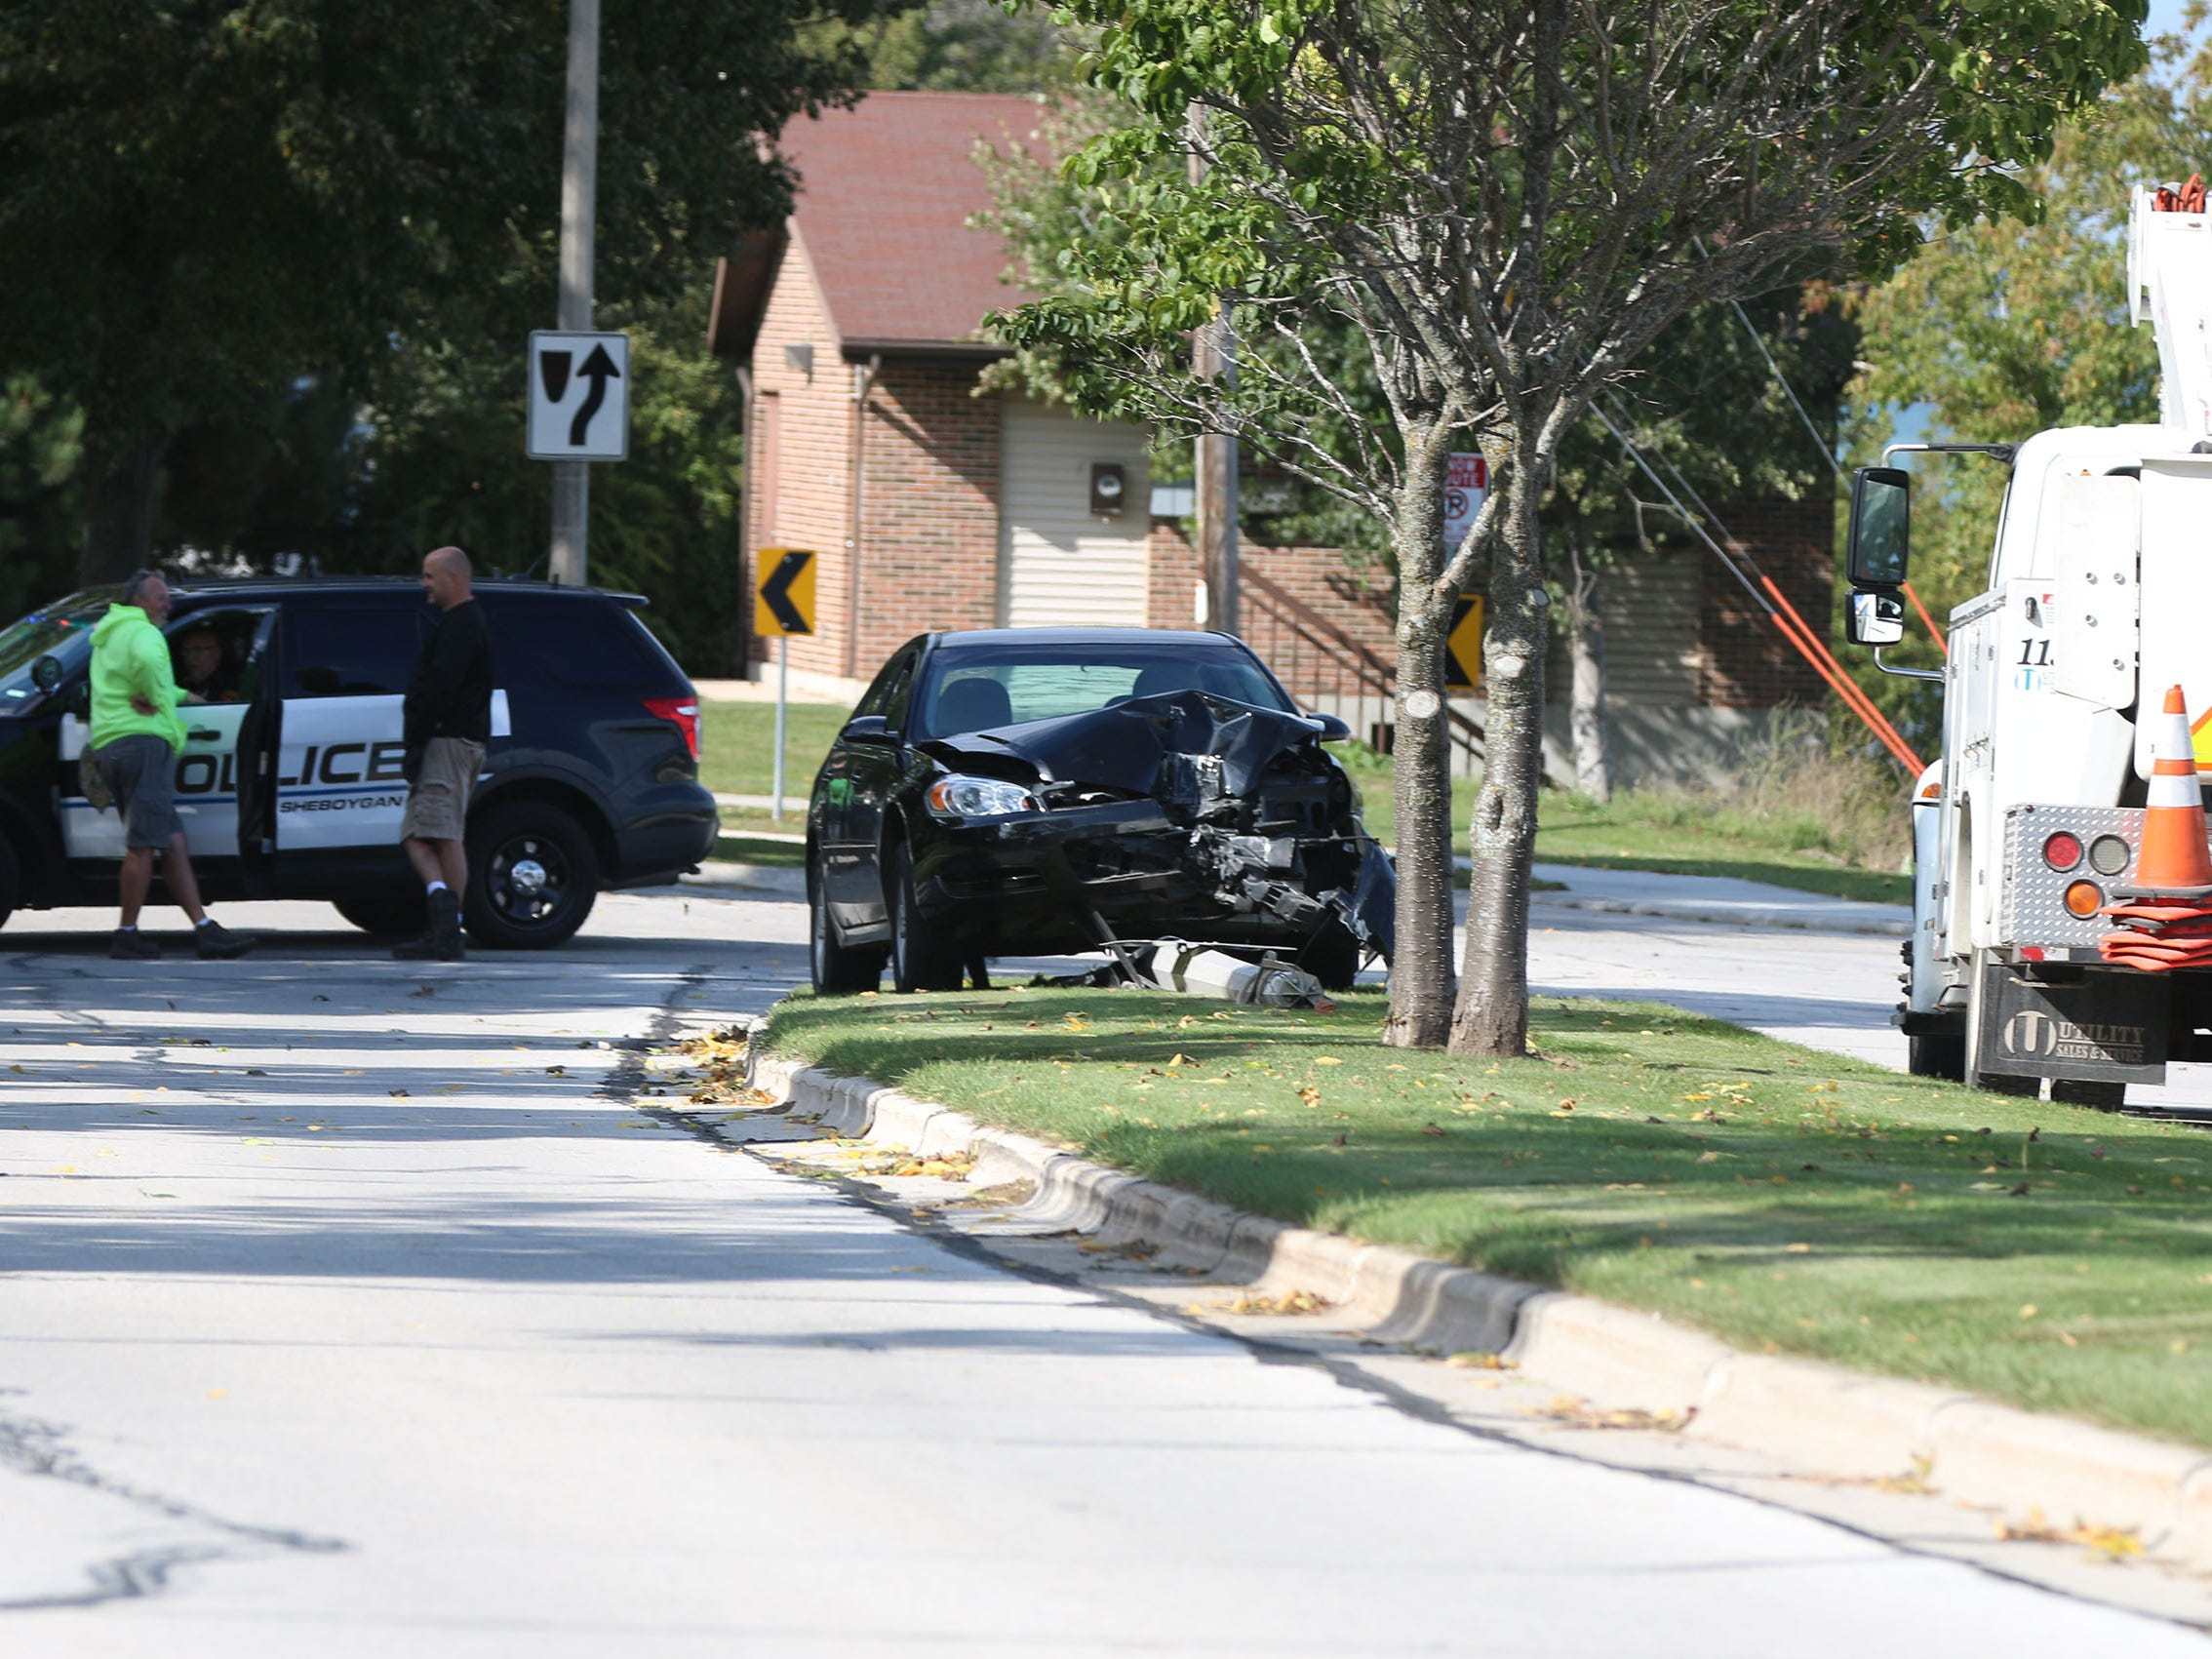 The front end of a car sustained damage when it hit a light pole, Thursday, September 27, 2018, in Sheboygan, Wis. The drivers side air bag deployed but there was no mention if there were injuries.  City of Sheboygan Police and Public Works employees were at the scene.